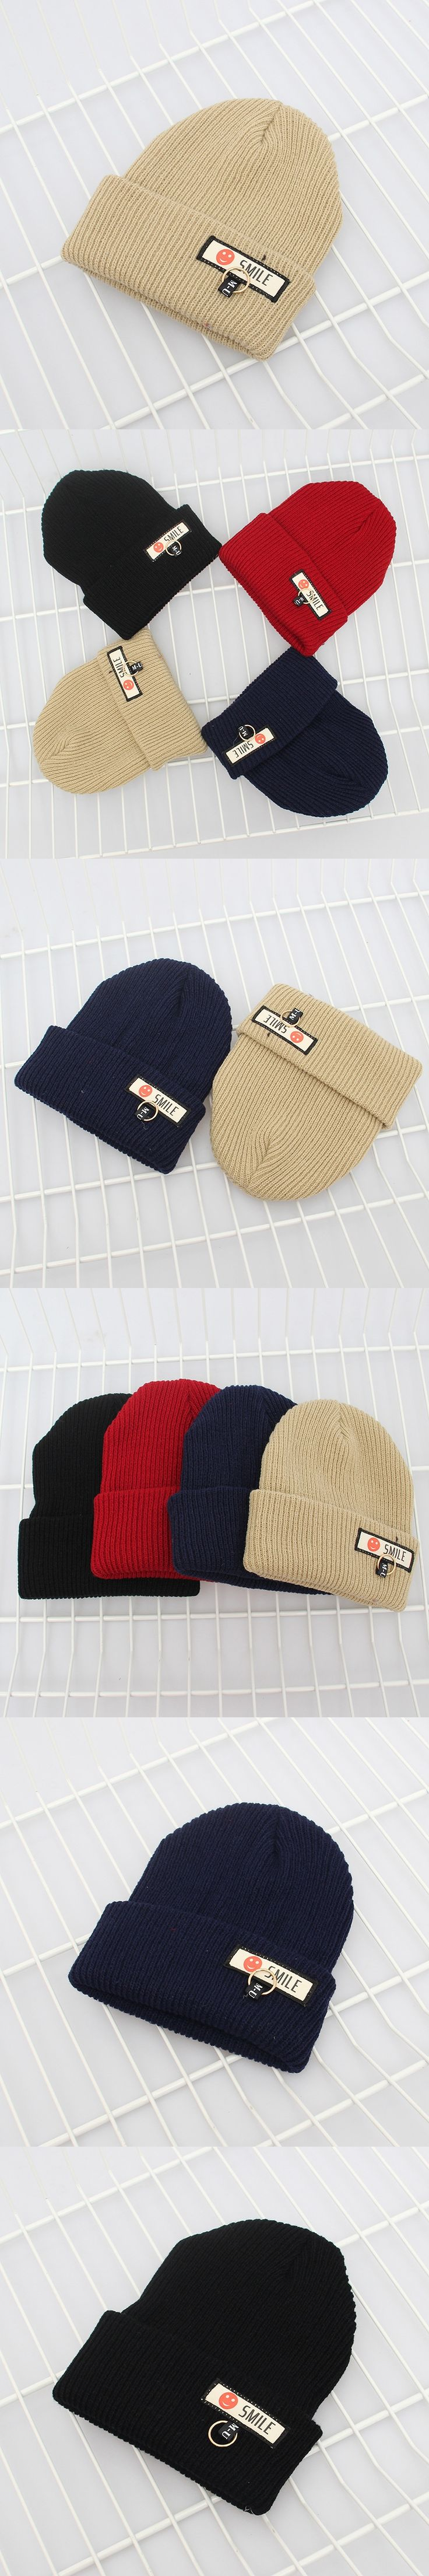 1 Piece Smile Patch Cloth Patchwork Iron Ring Knitted Wool Hat Unisex Hip Hop Beanies Hat Fall and Winter Warm Ski Cap 10182